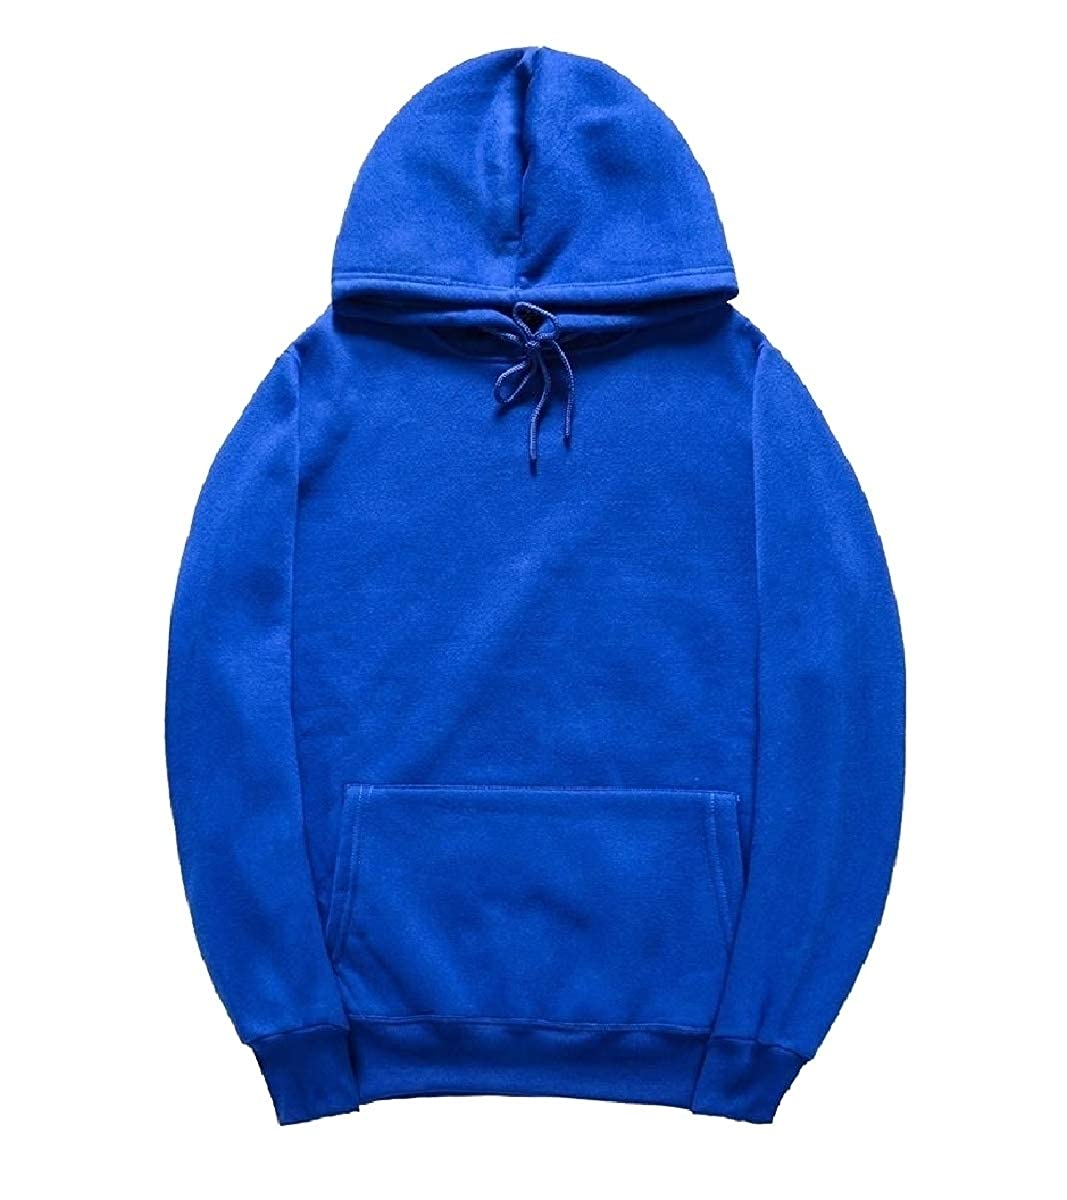 YUNY Men Pure Color Stylish Long Sleeve Plus Size Hoodies Sweater Blue M